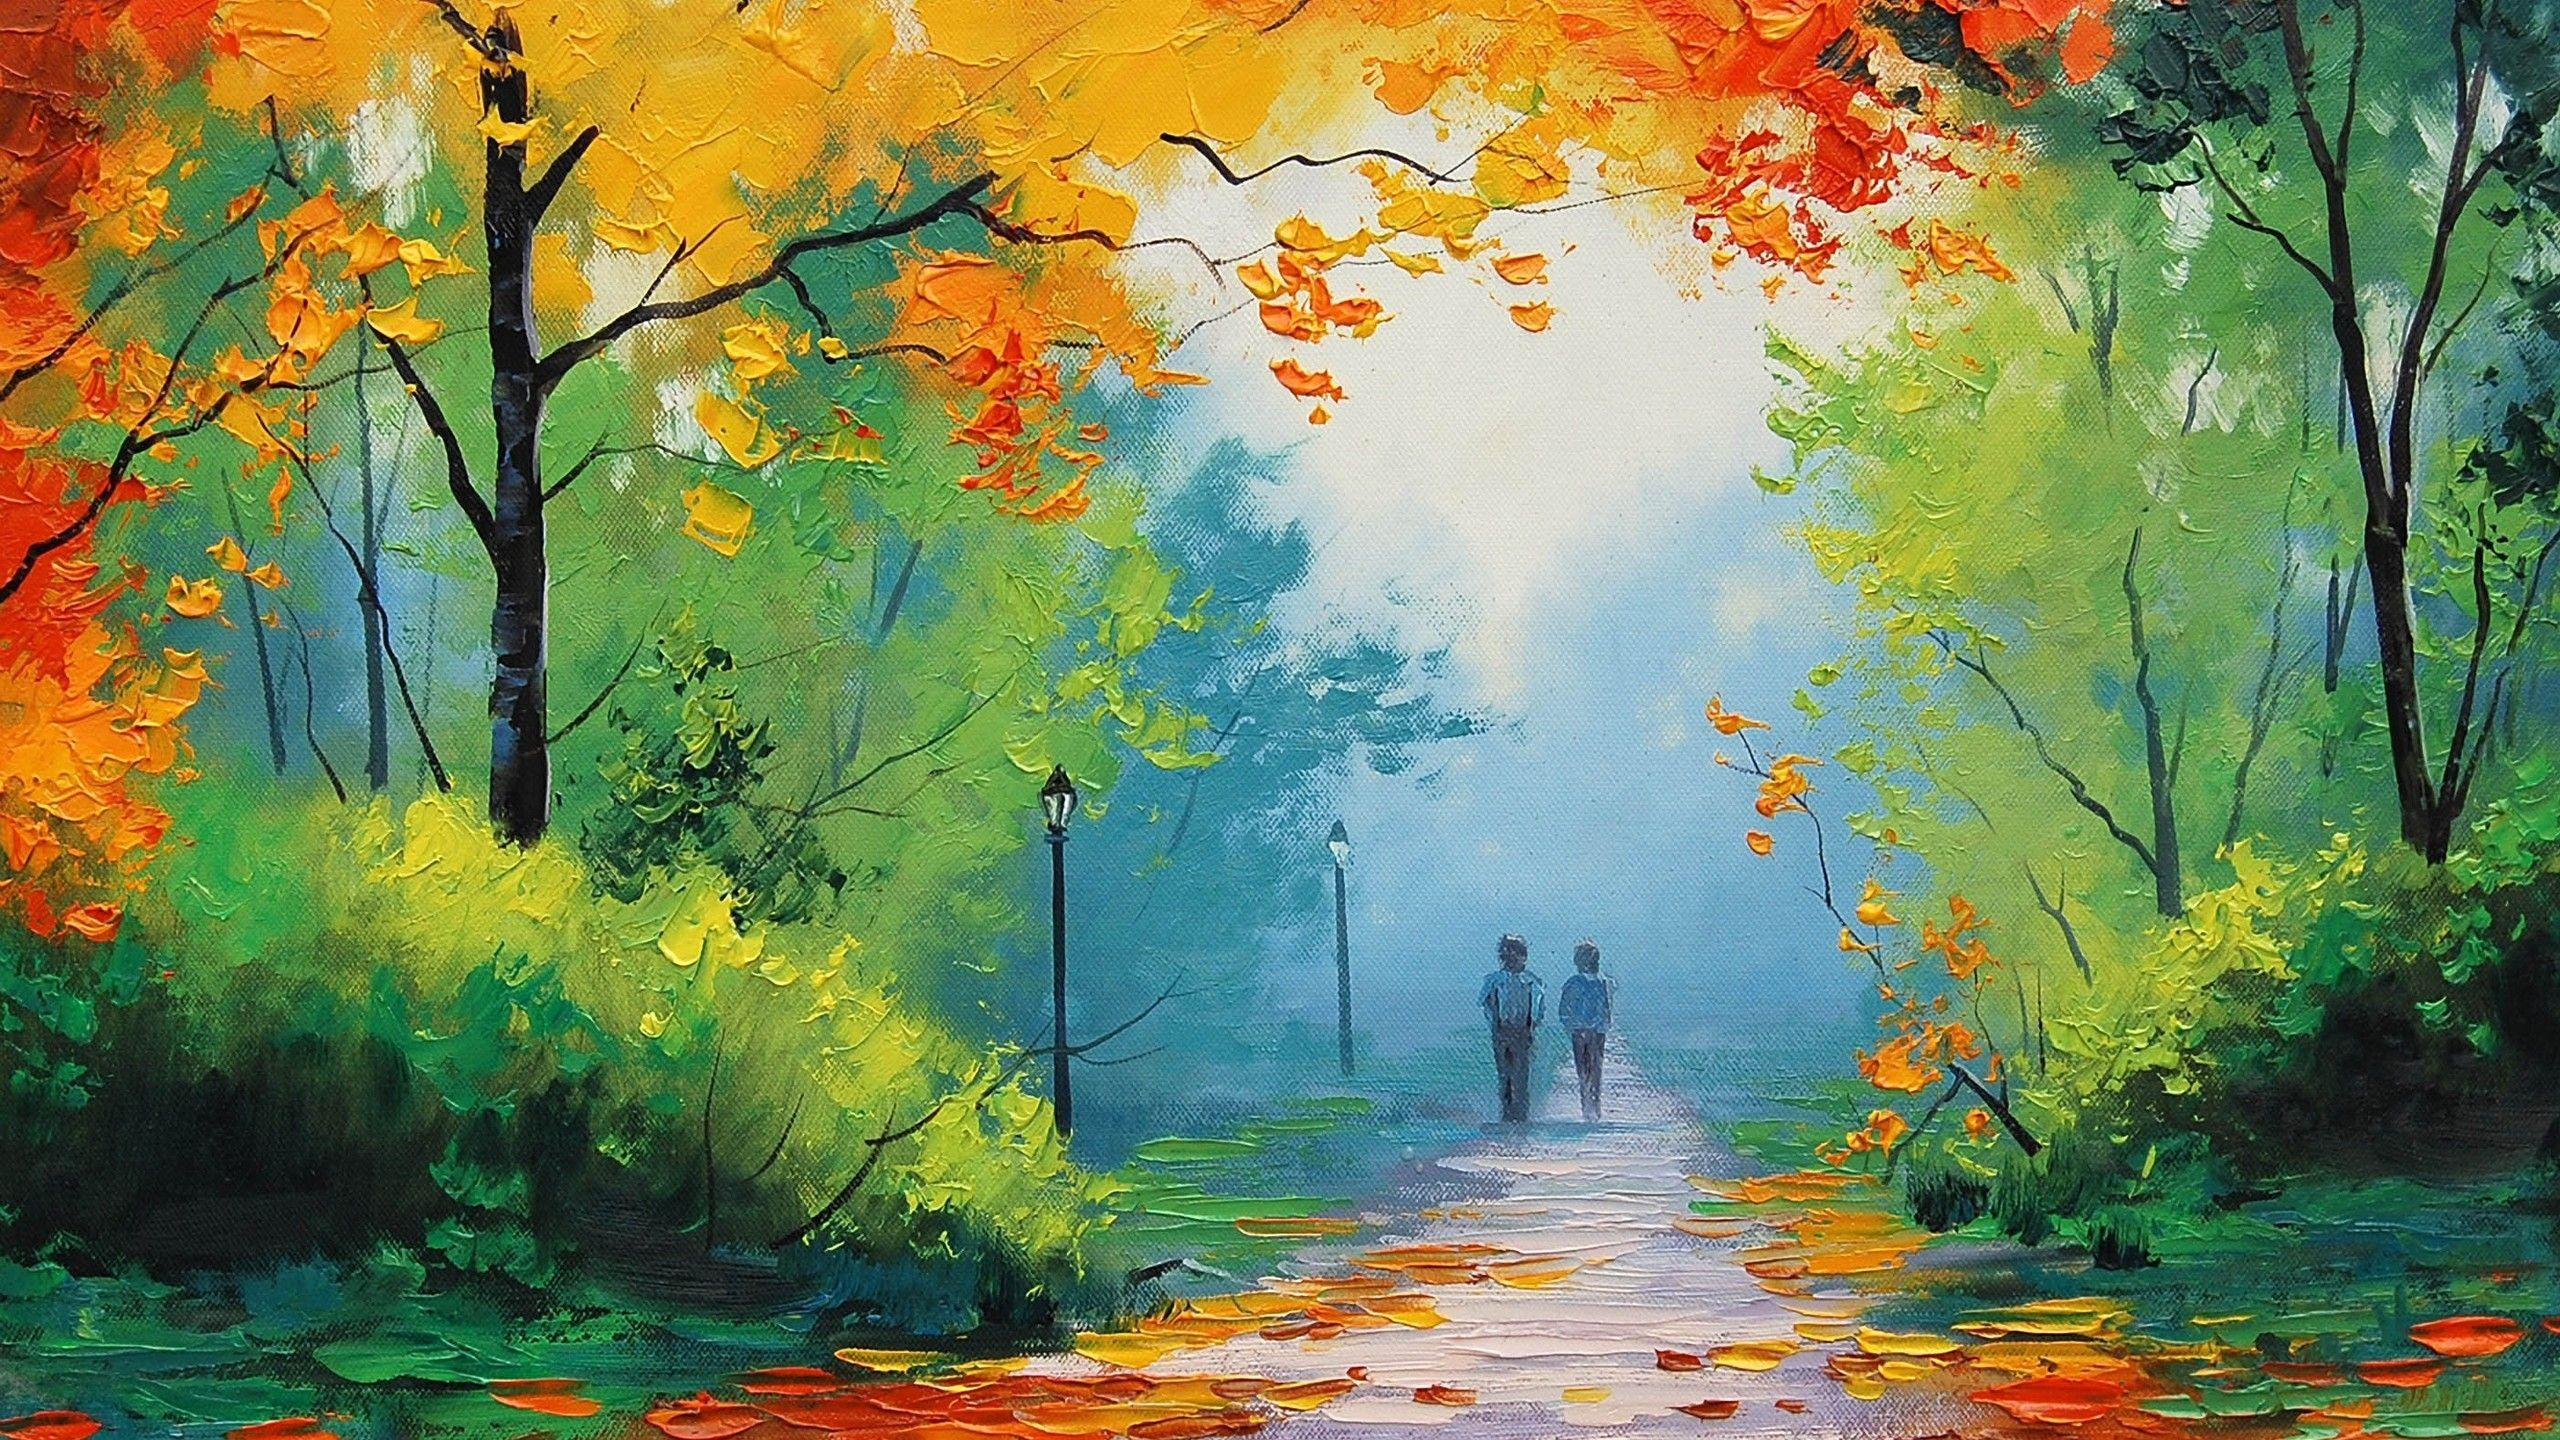 Elegant Best Oil Painting Hd Wallpaper Nature Paintings Forest Painting Turn Photo Into Painting